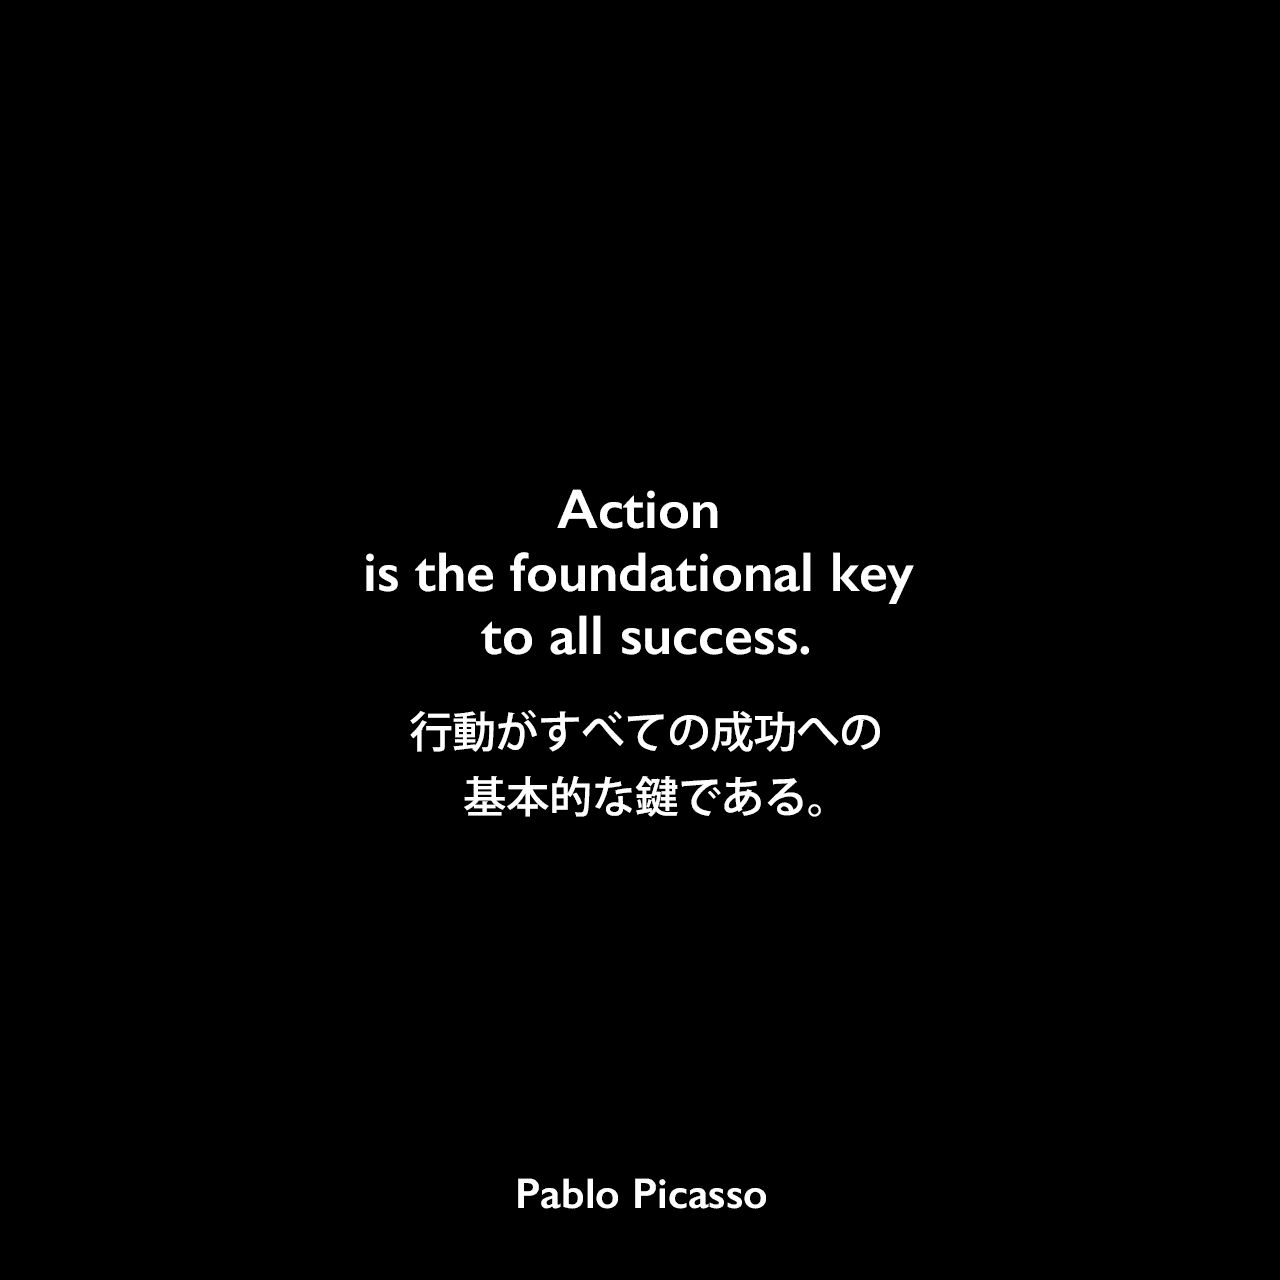 Action is the foundational key to all success.行動がすべての成功への基本的な鍵である。